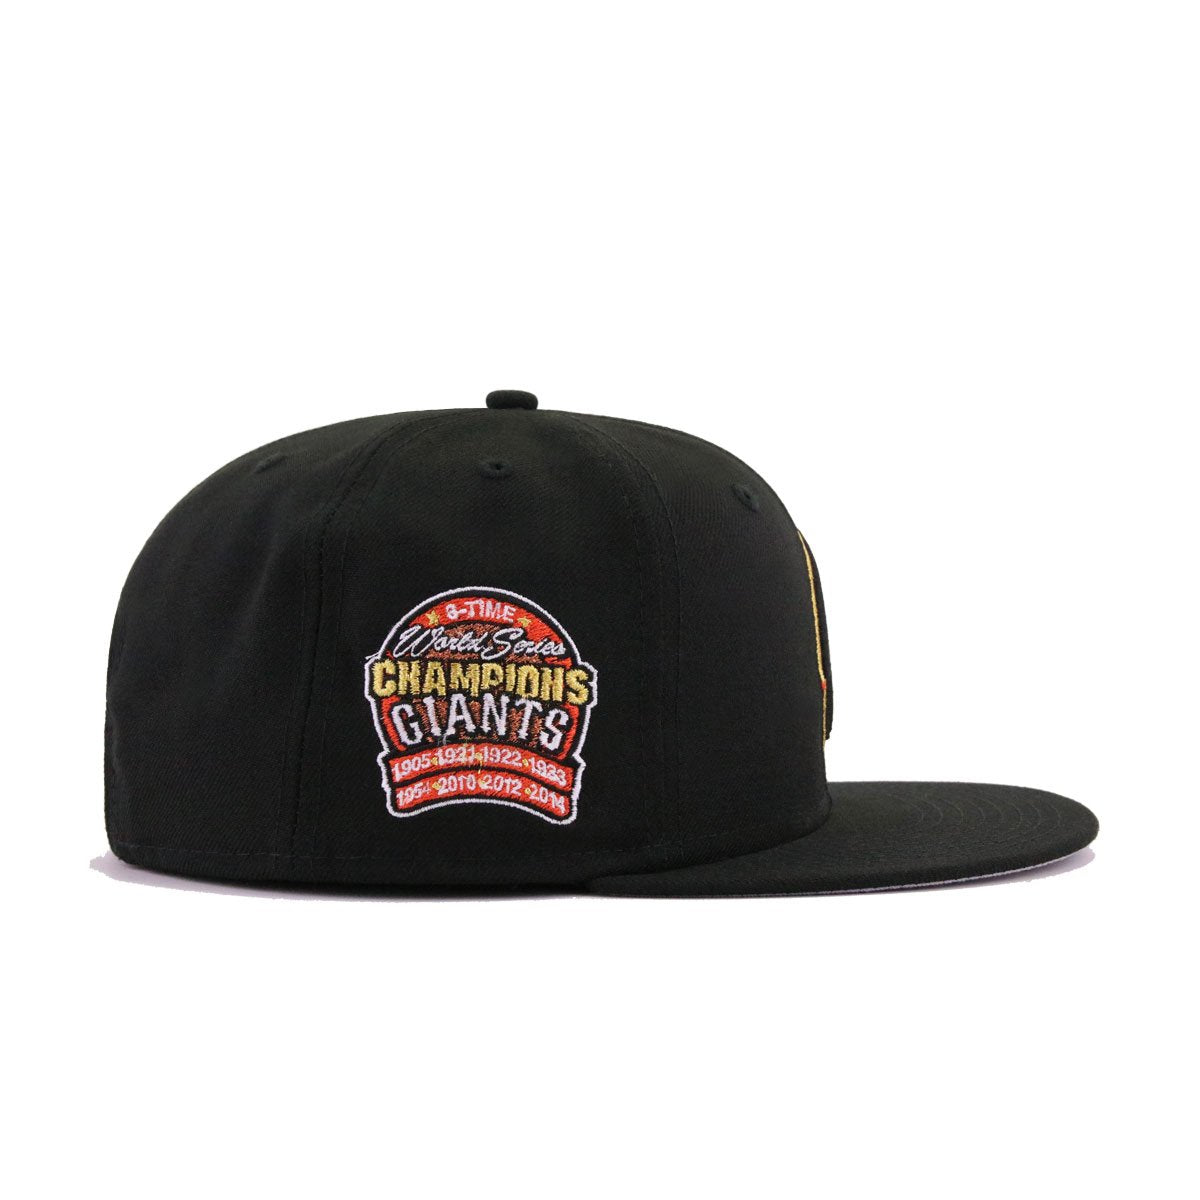 d262a75a San Francisco Giants Black Batting Practice 8-Time Champions New Era 9Fifty  Snapback